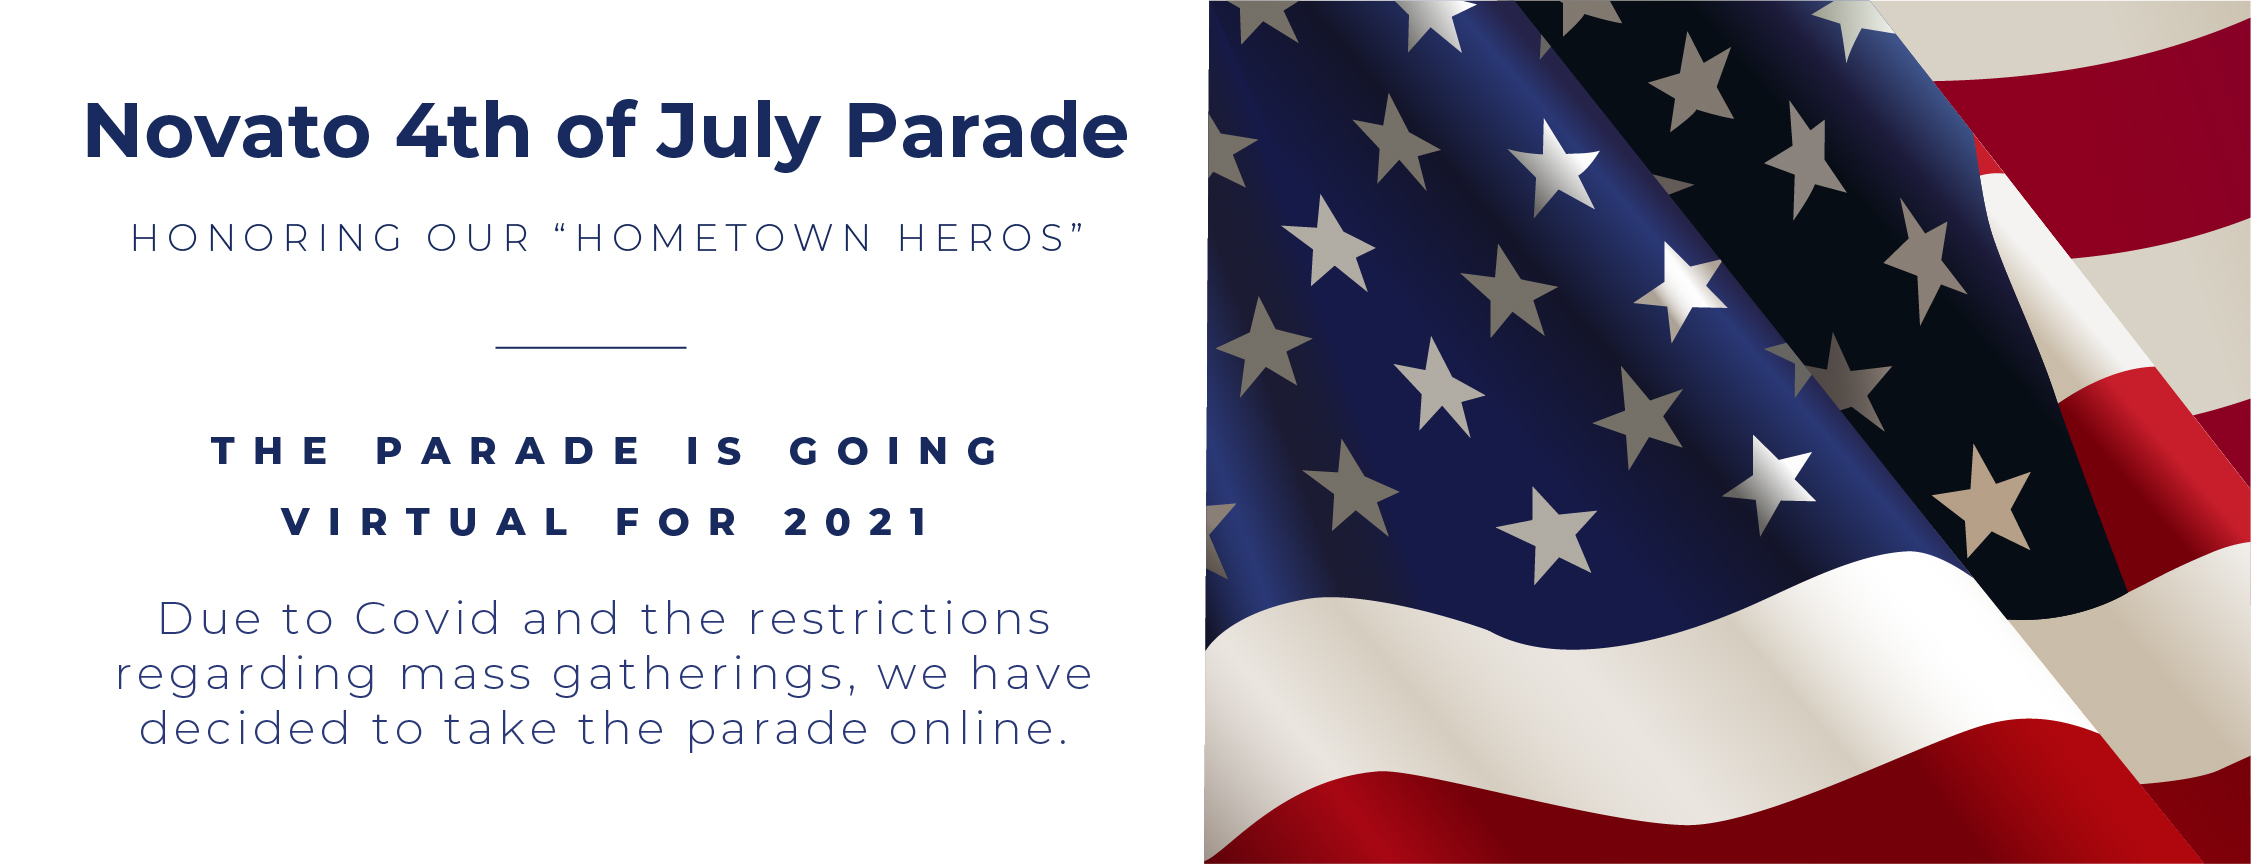 Novato 4th of July Parade Announcement Banner